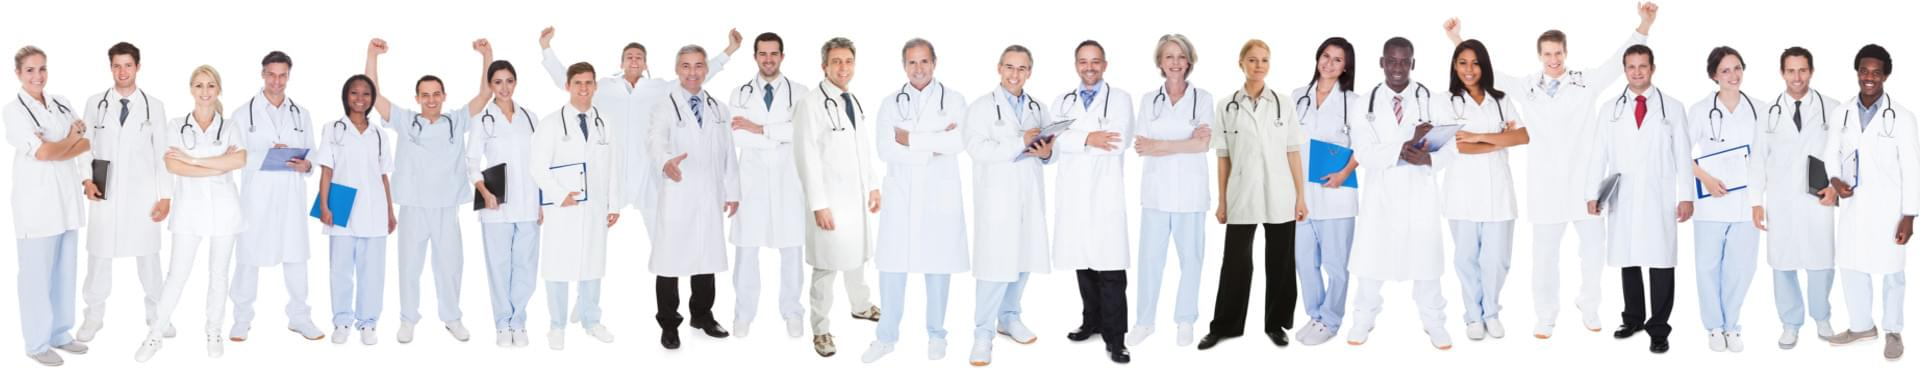 MEDCOM - By and for doctors